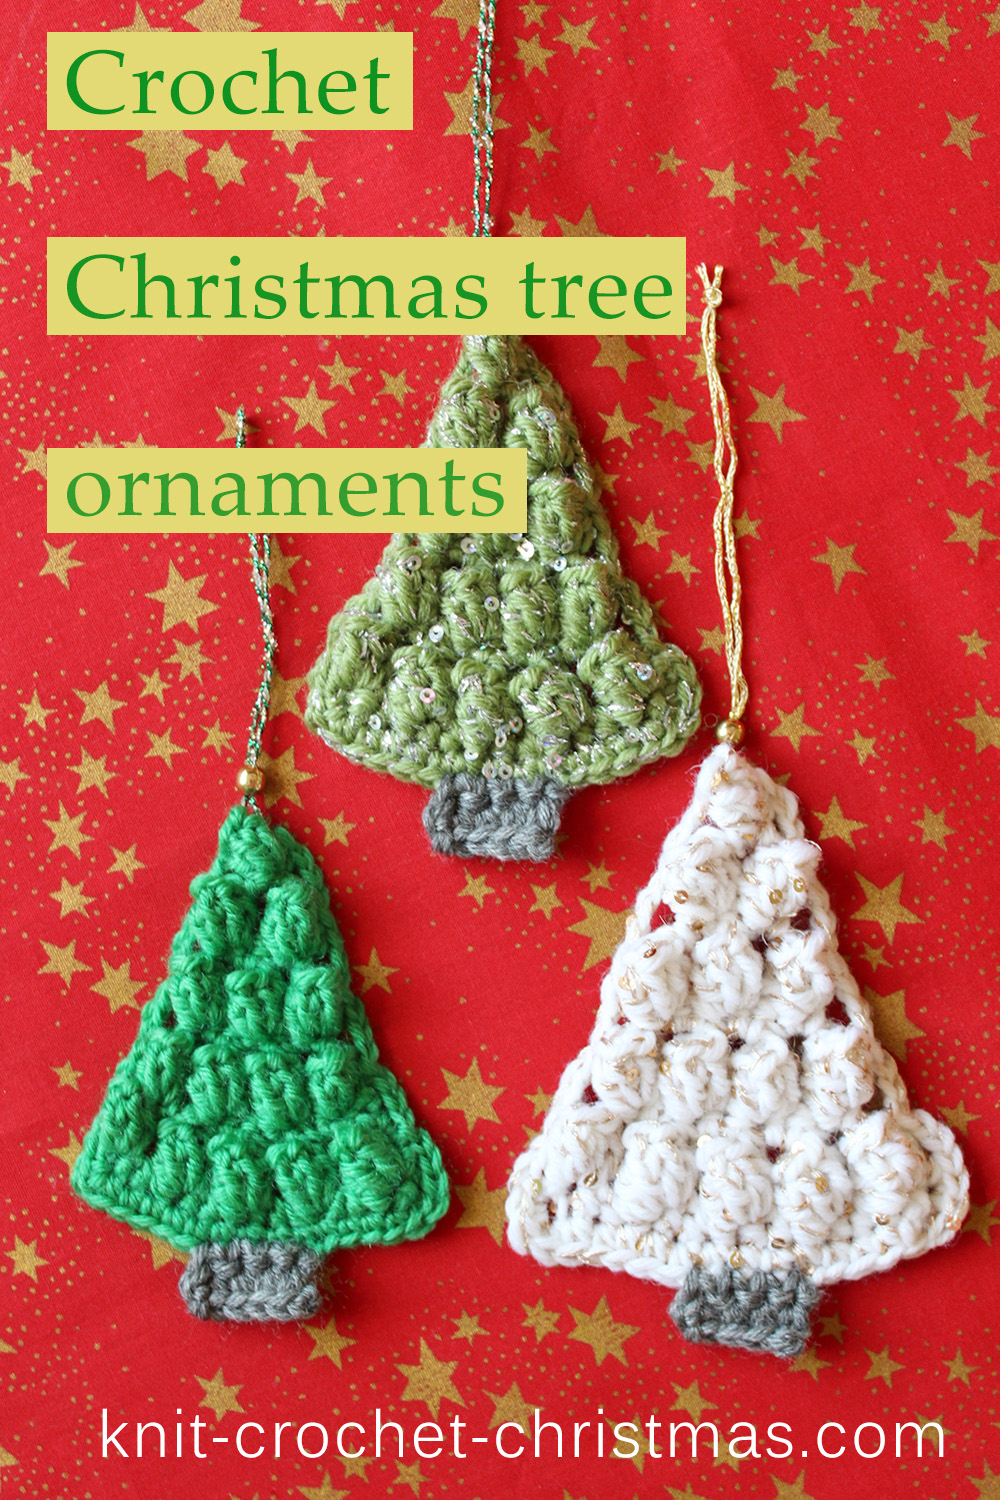 Crochet-christmas-tree-ornaments-pinterest